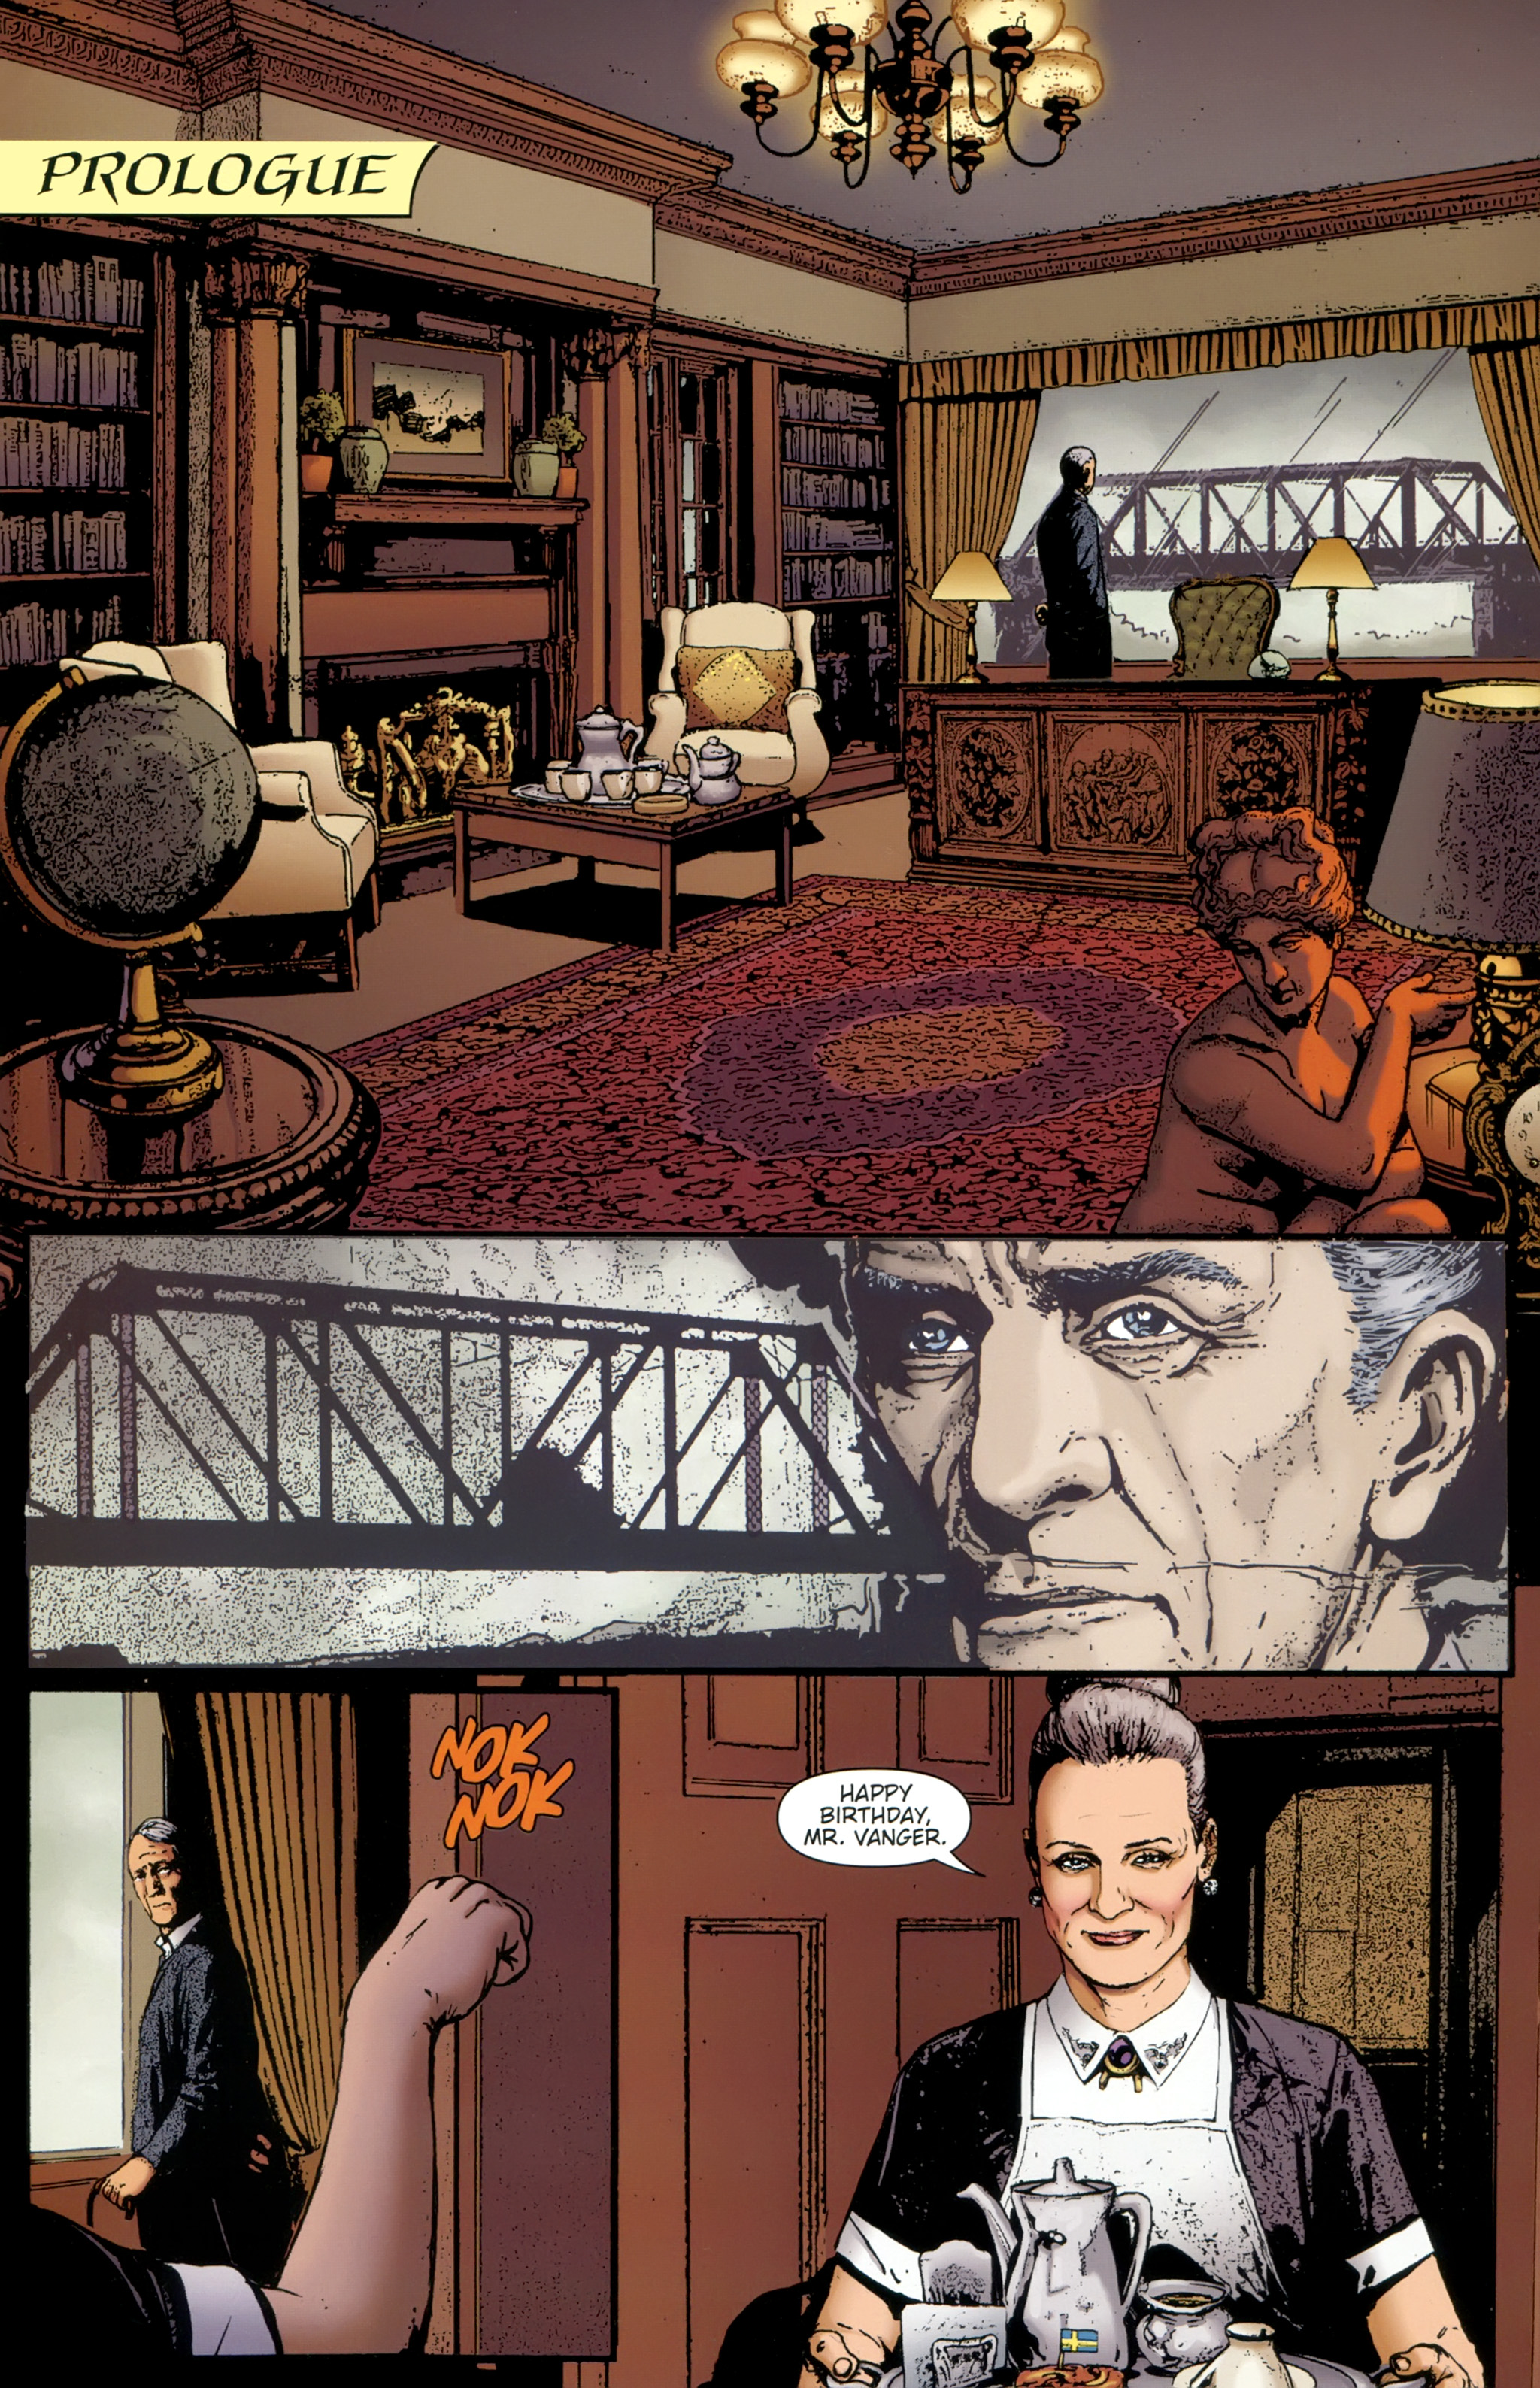 Read online The Girl With the Dragon Tattoo comic -  Issue # TPB 1 - 8